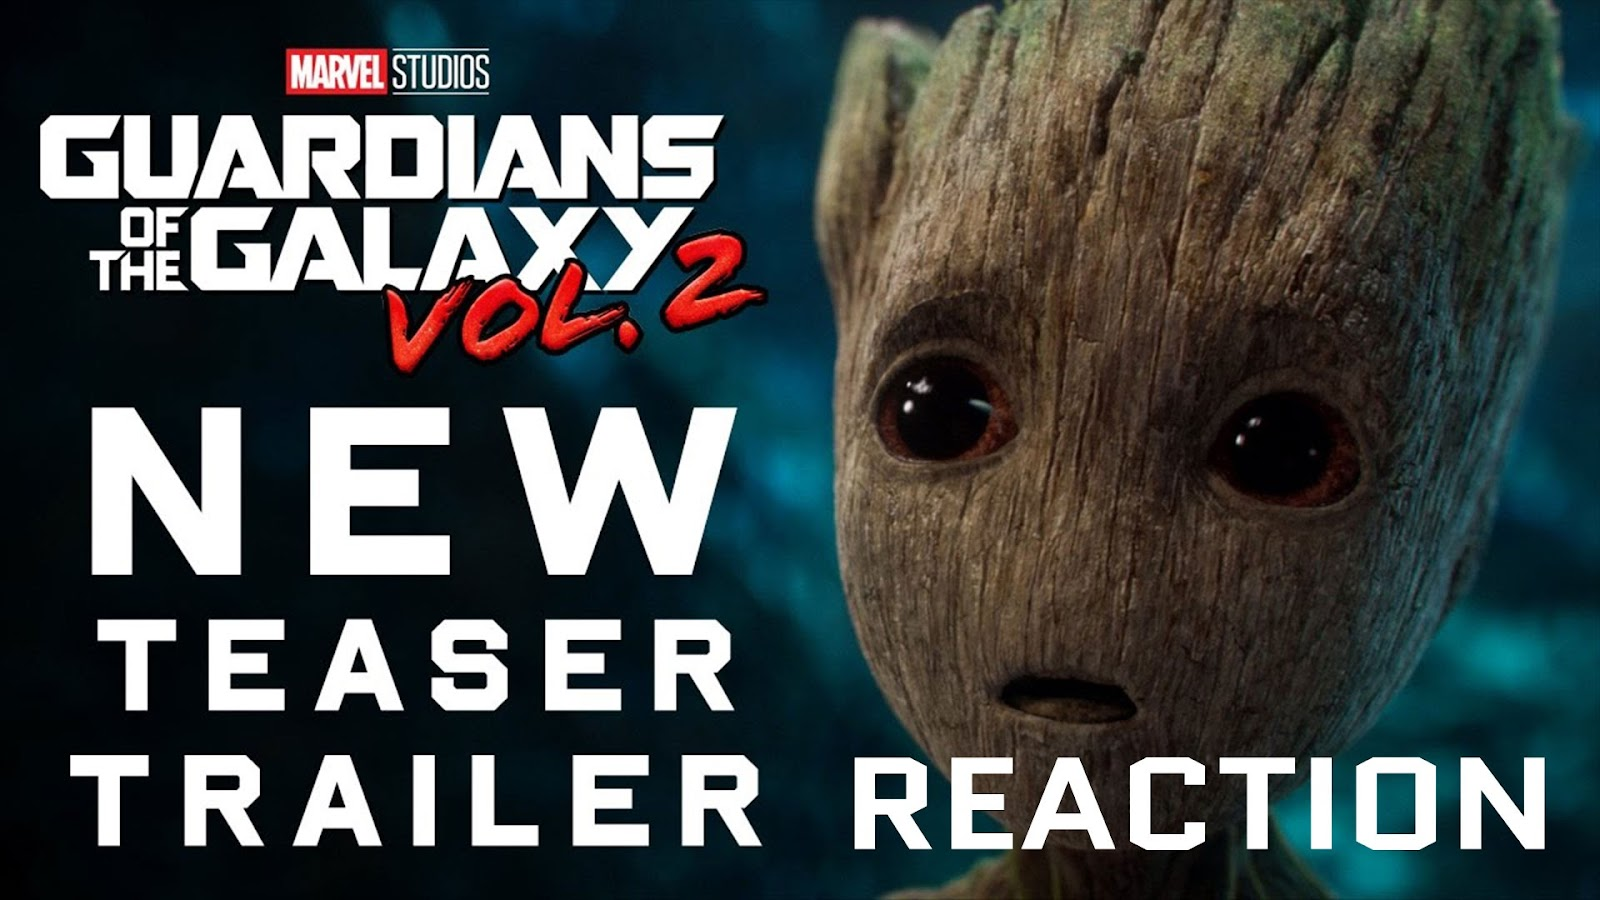 reaction to trailer for Guardians of the Galaxy Vol. 2